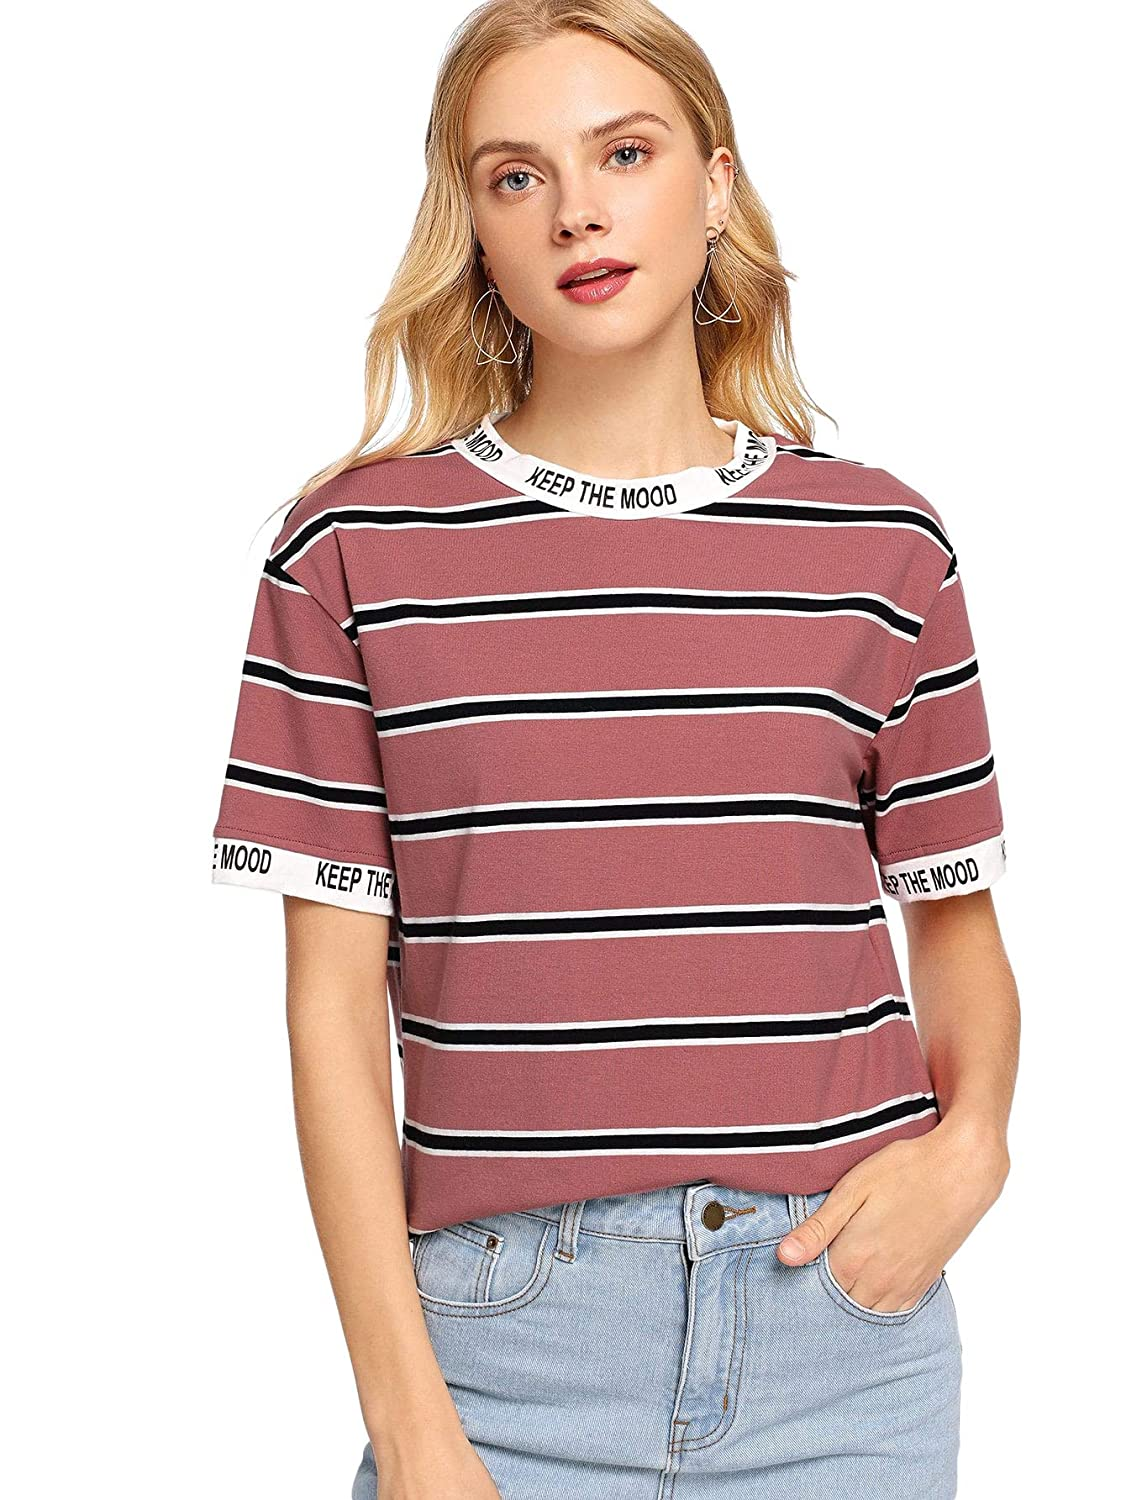 BrickRed Verdusa Women's Graphic Letter Printed color Block Stripe TShirt Casual Tee